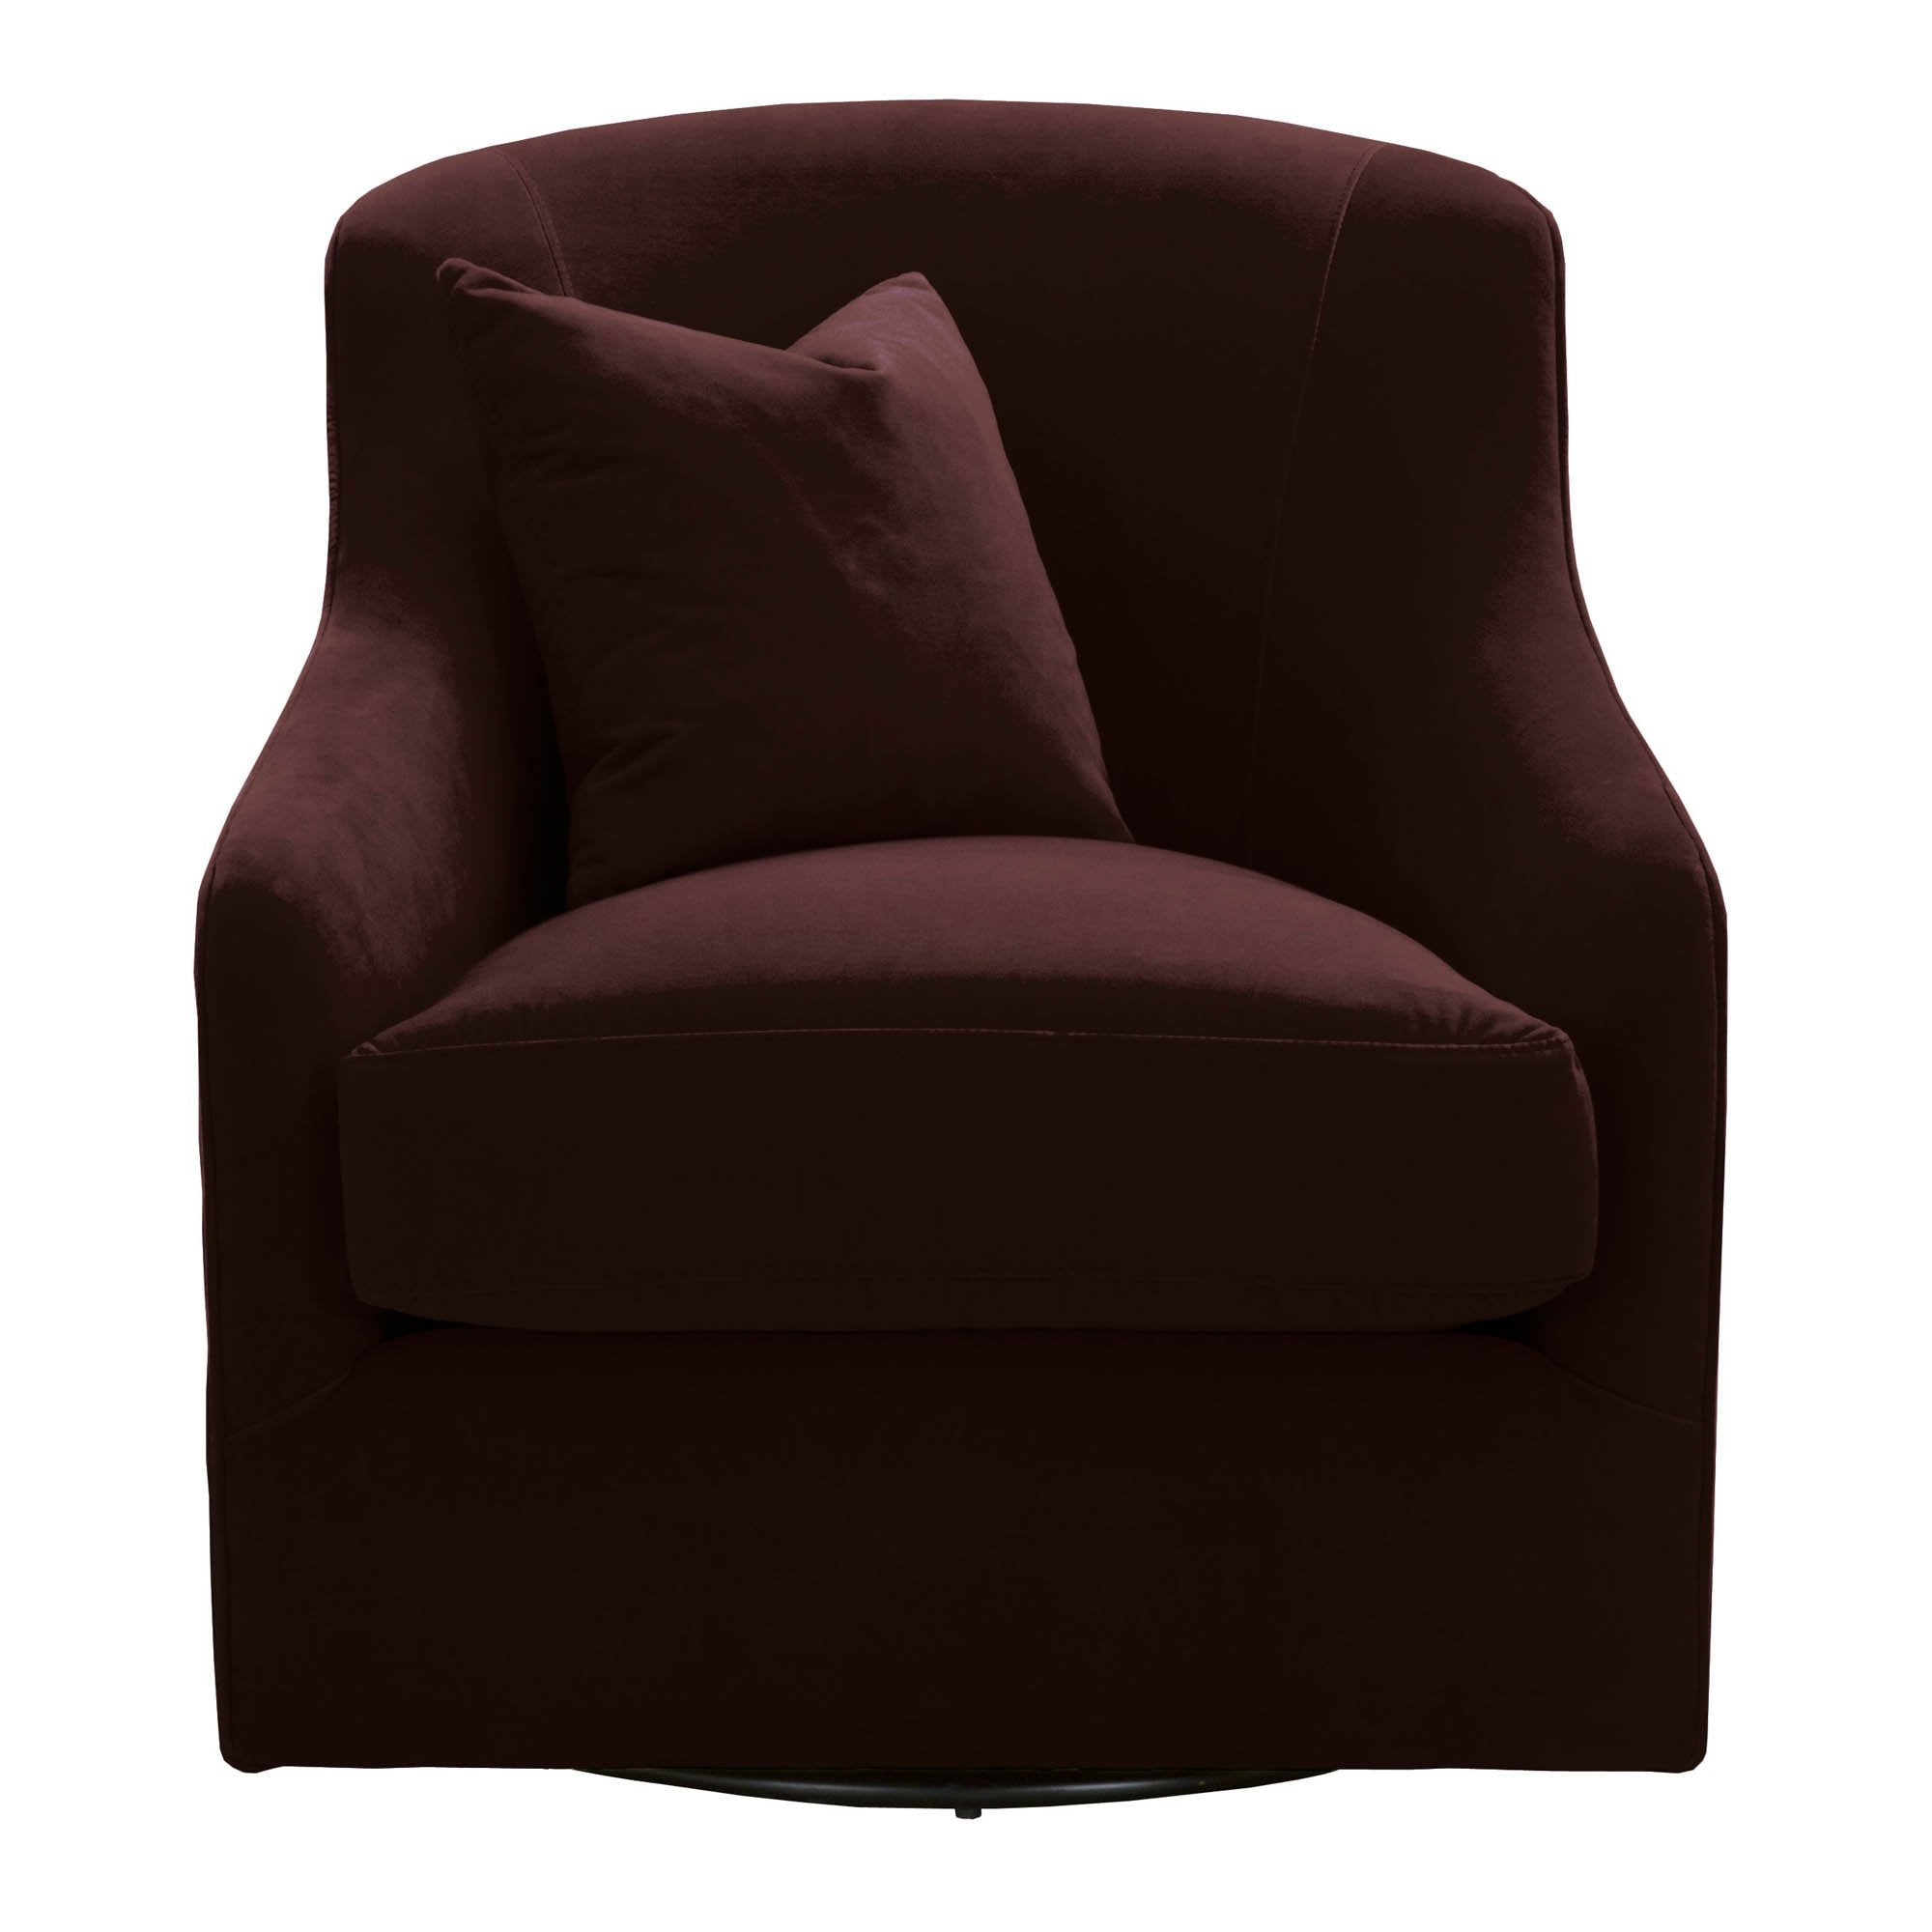 Mona Swivel Club Chair in